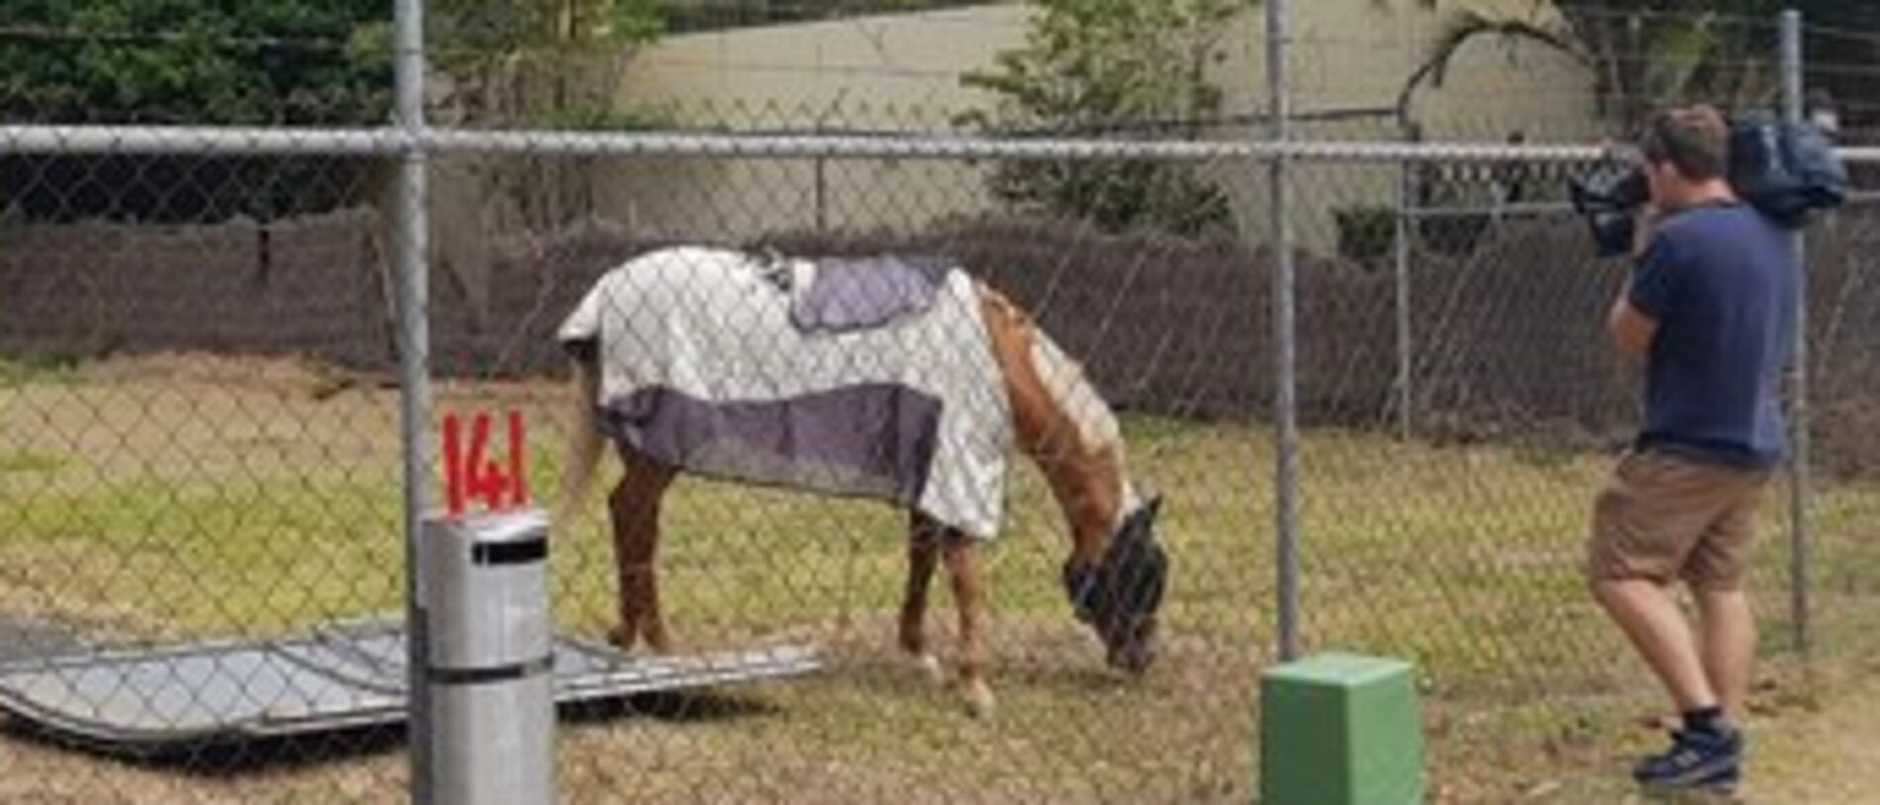 A missing horse has been found beside a major attraction after it was reportedly stolen from a property earlier this morning.